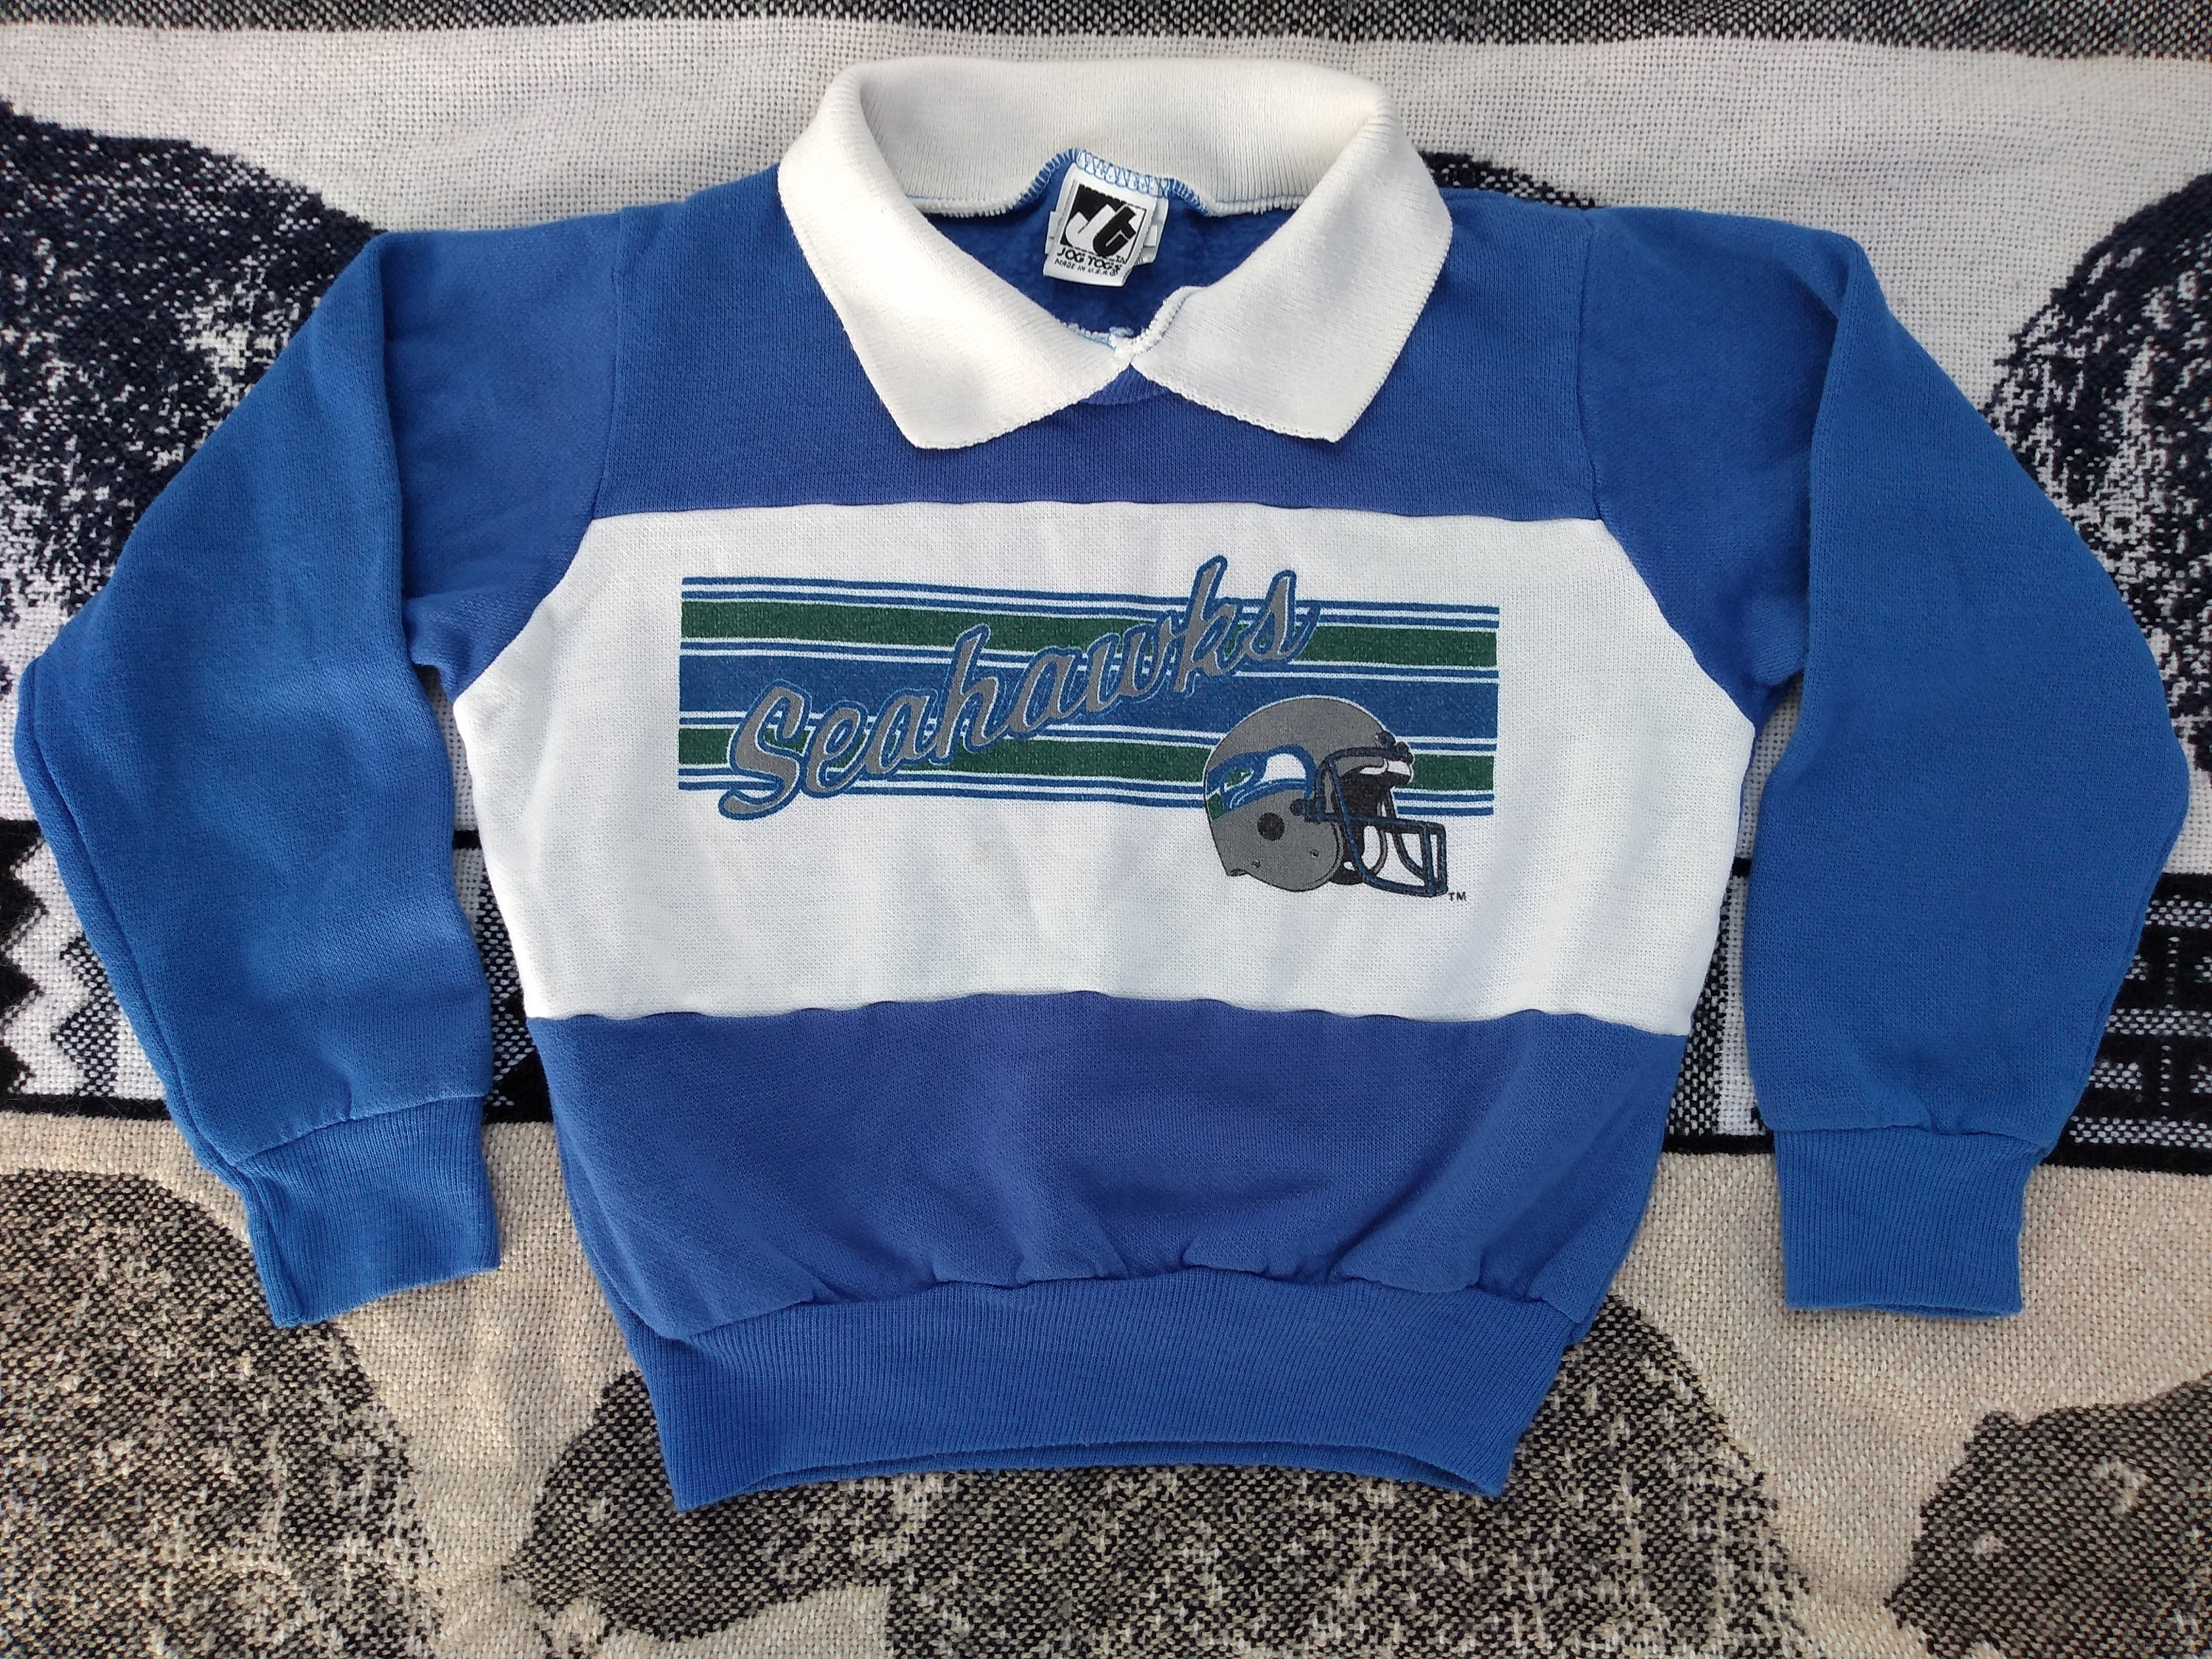 classic fb7a6 38159 Seattle SEAHAWKS Youth Sweatshirt vintage 80s Kids shirt retro Largent sz 5  1980s retro fan Wear Kingdome helmet logo Jog Togs Childrens top